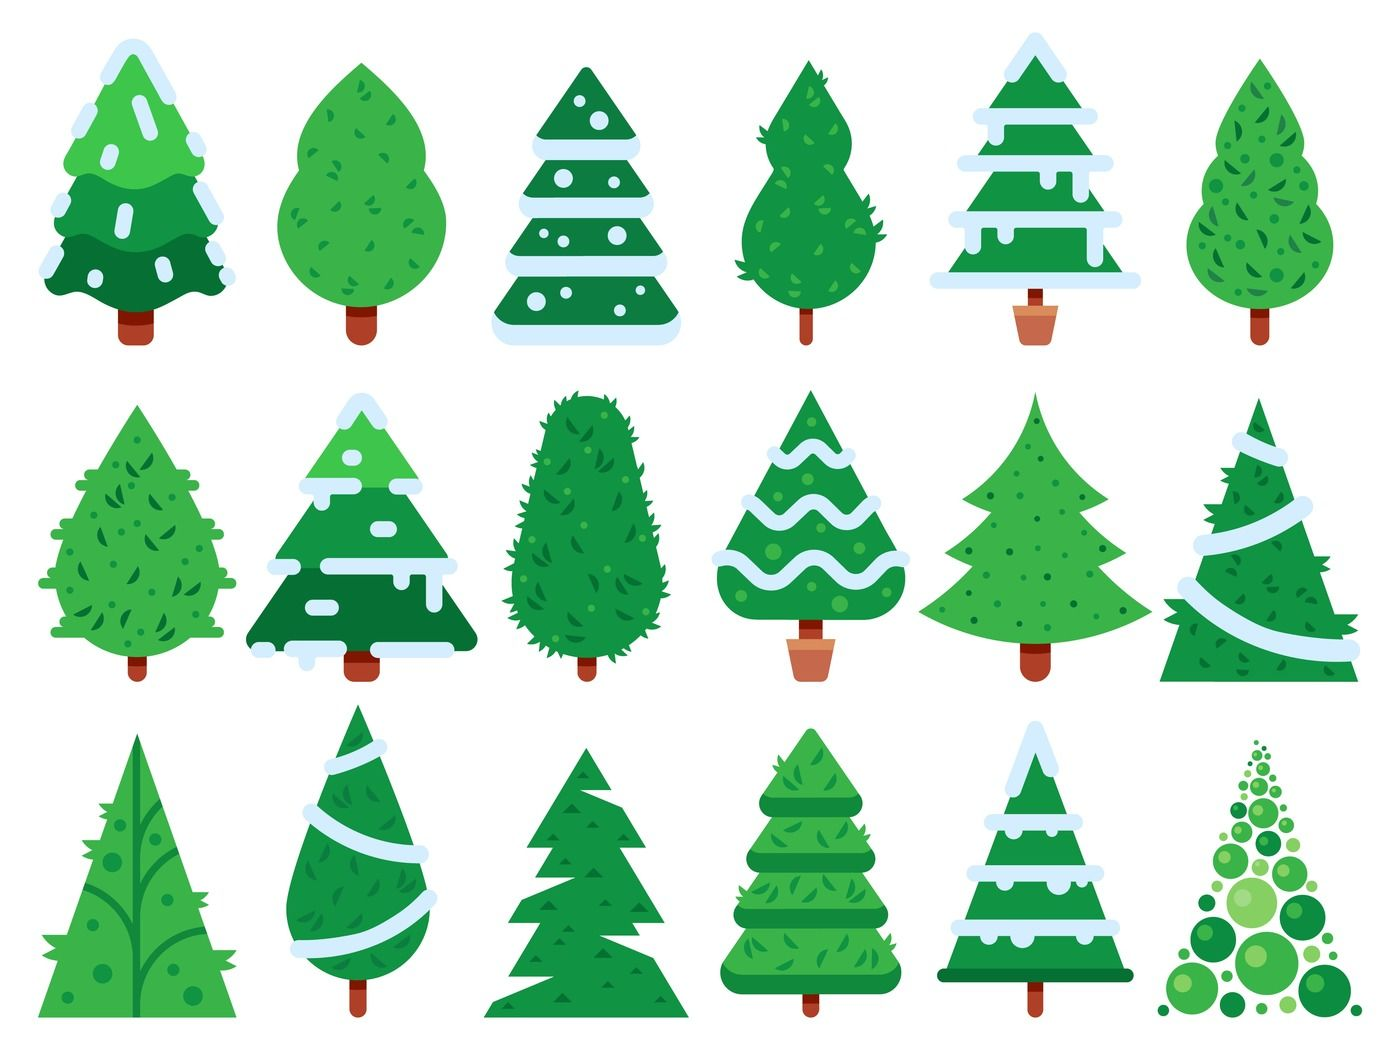 Green Christmas Tree Simple Xmas Trees Shape Nature Fir Isolated